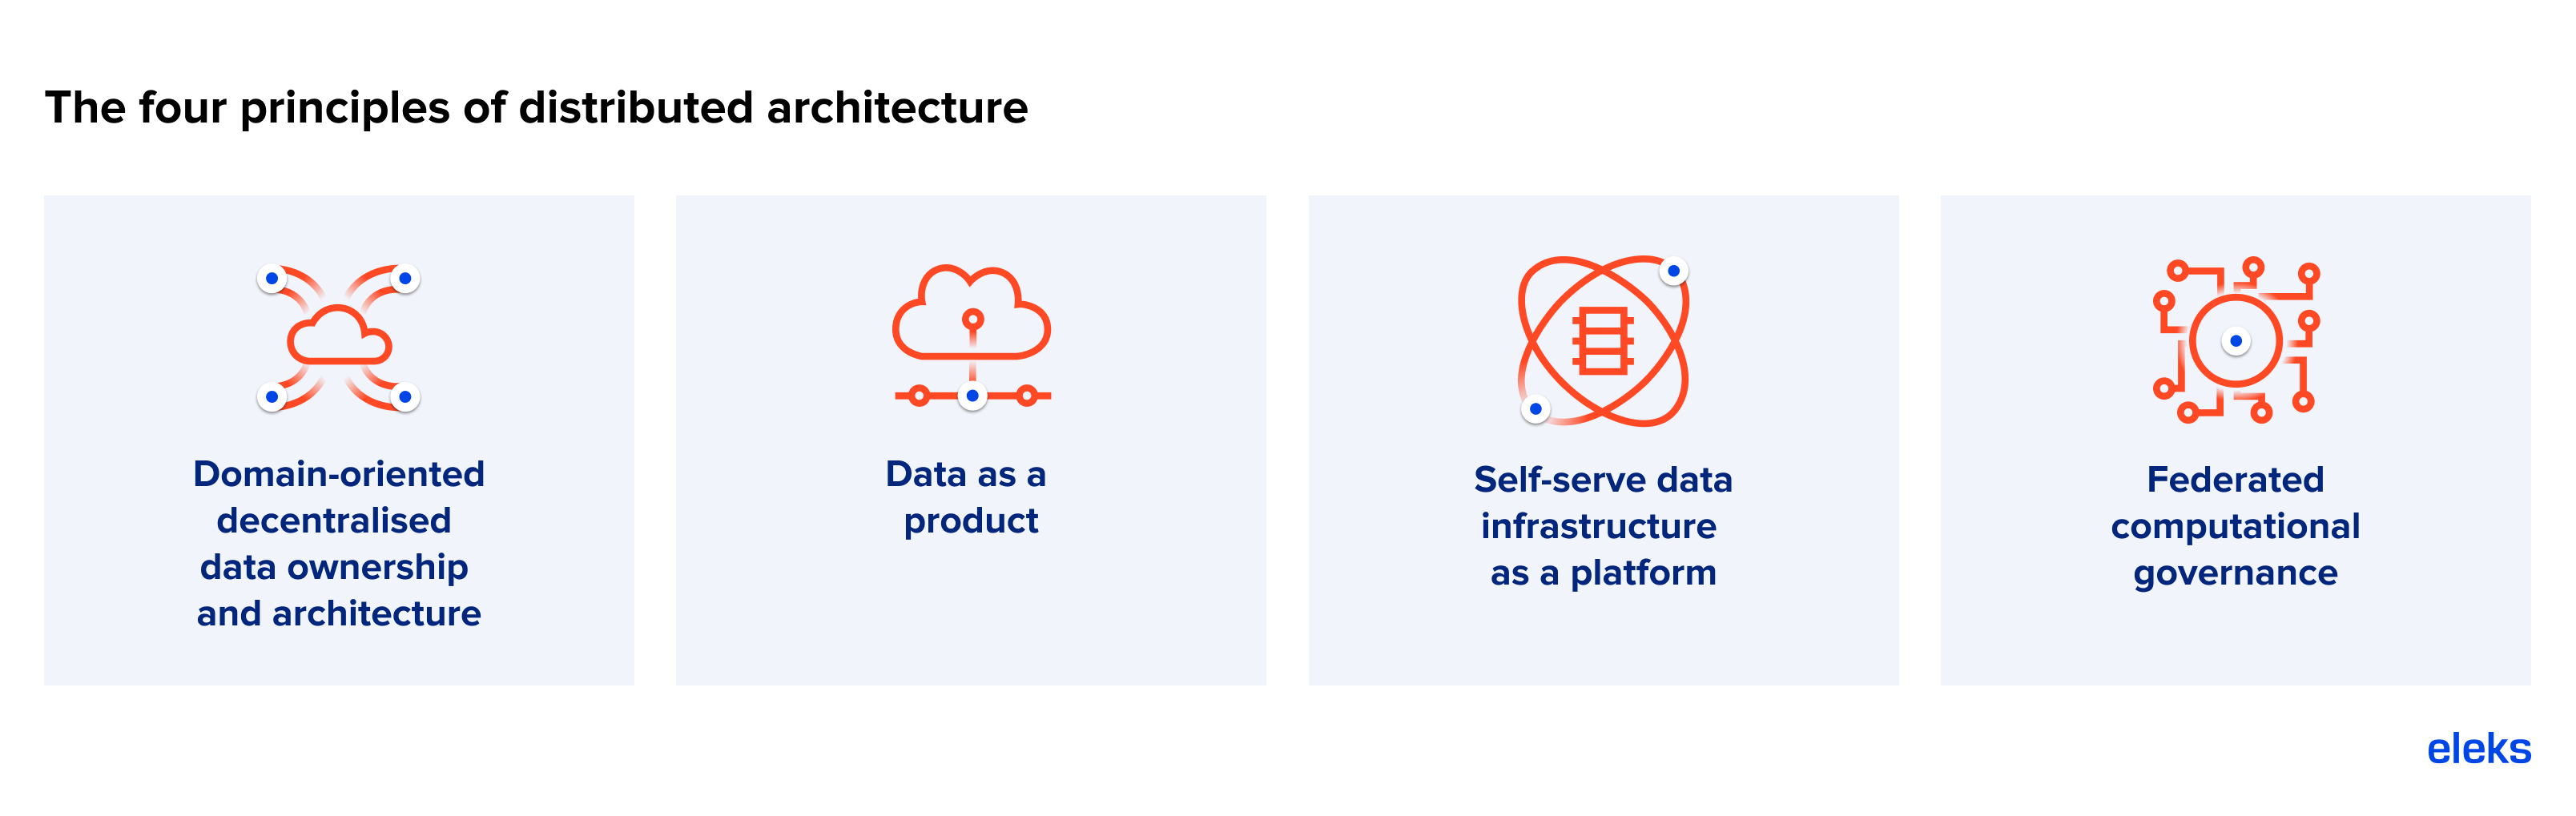 data mesh the four principles of distributed architecture-1